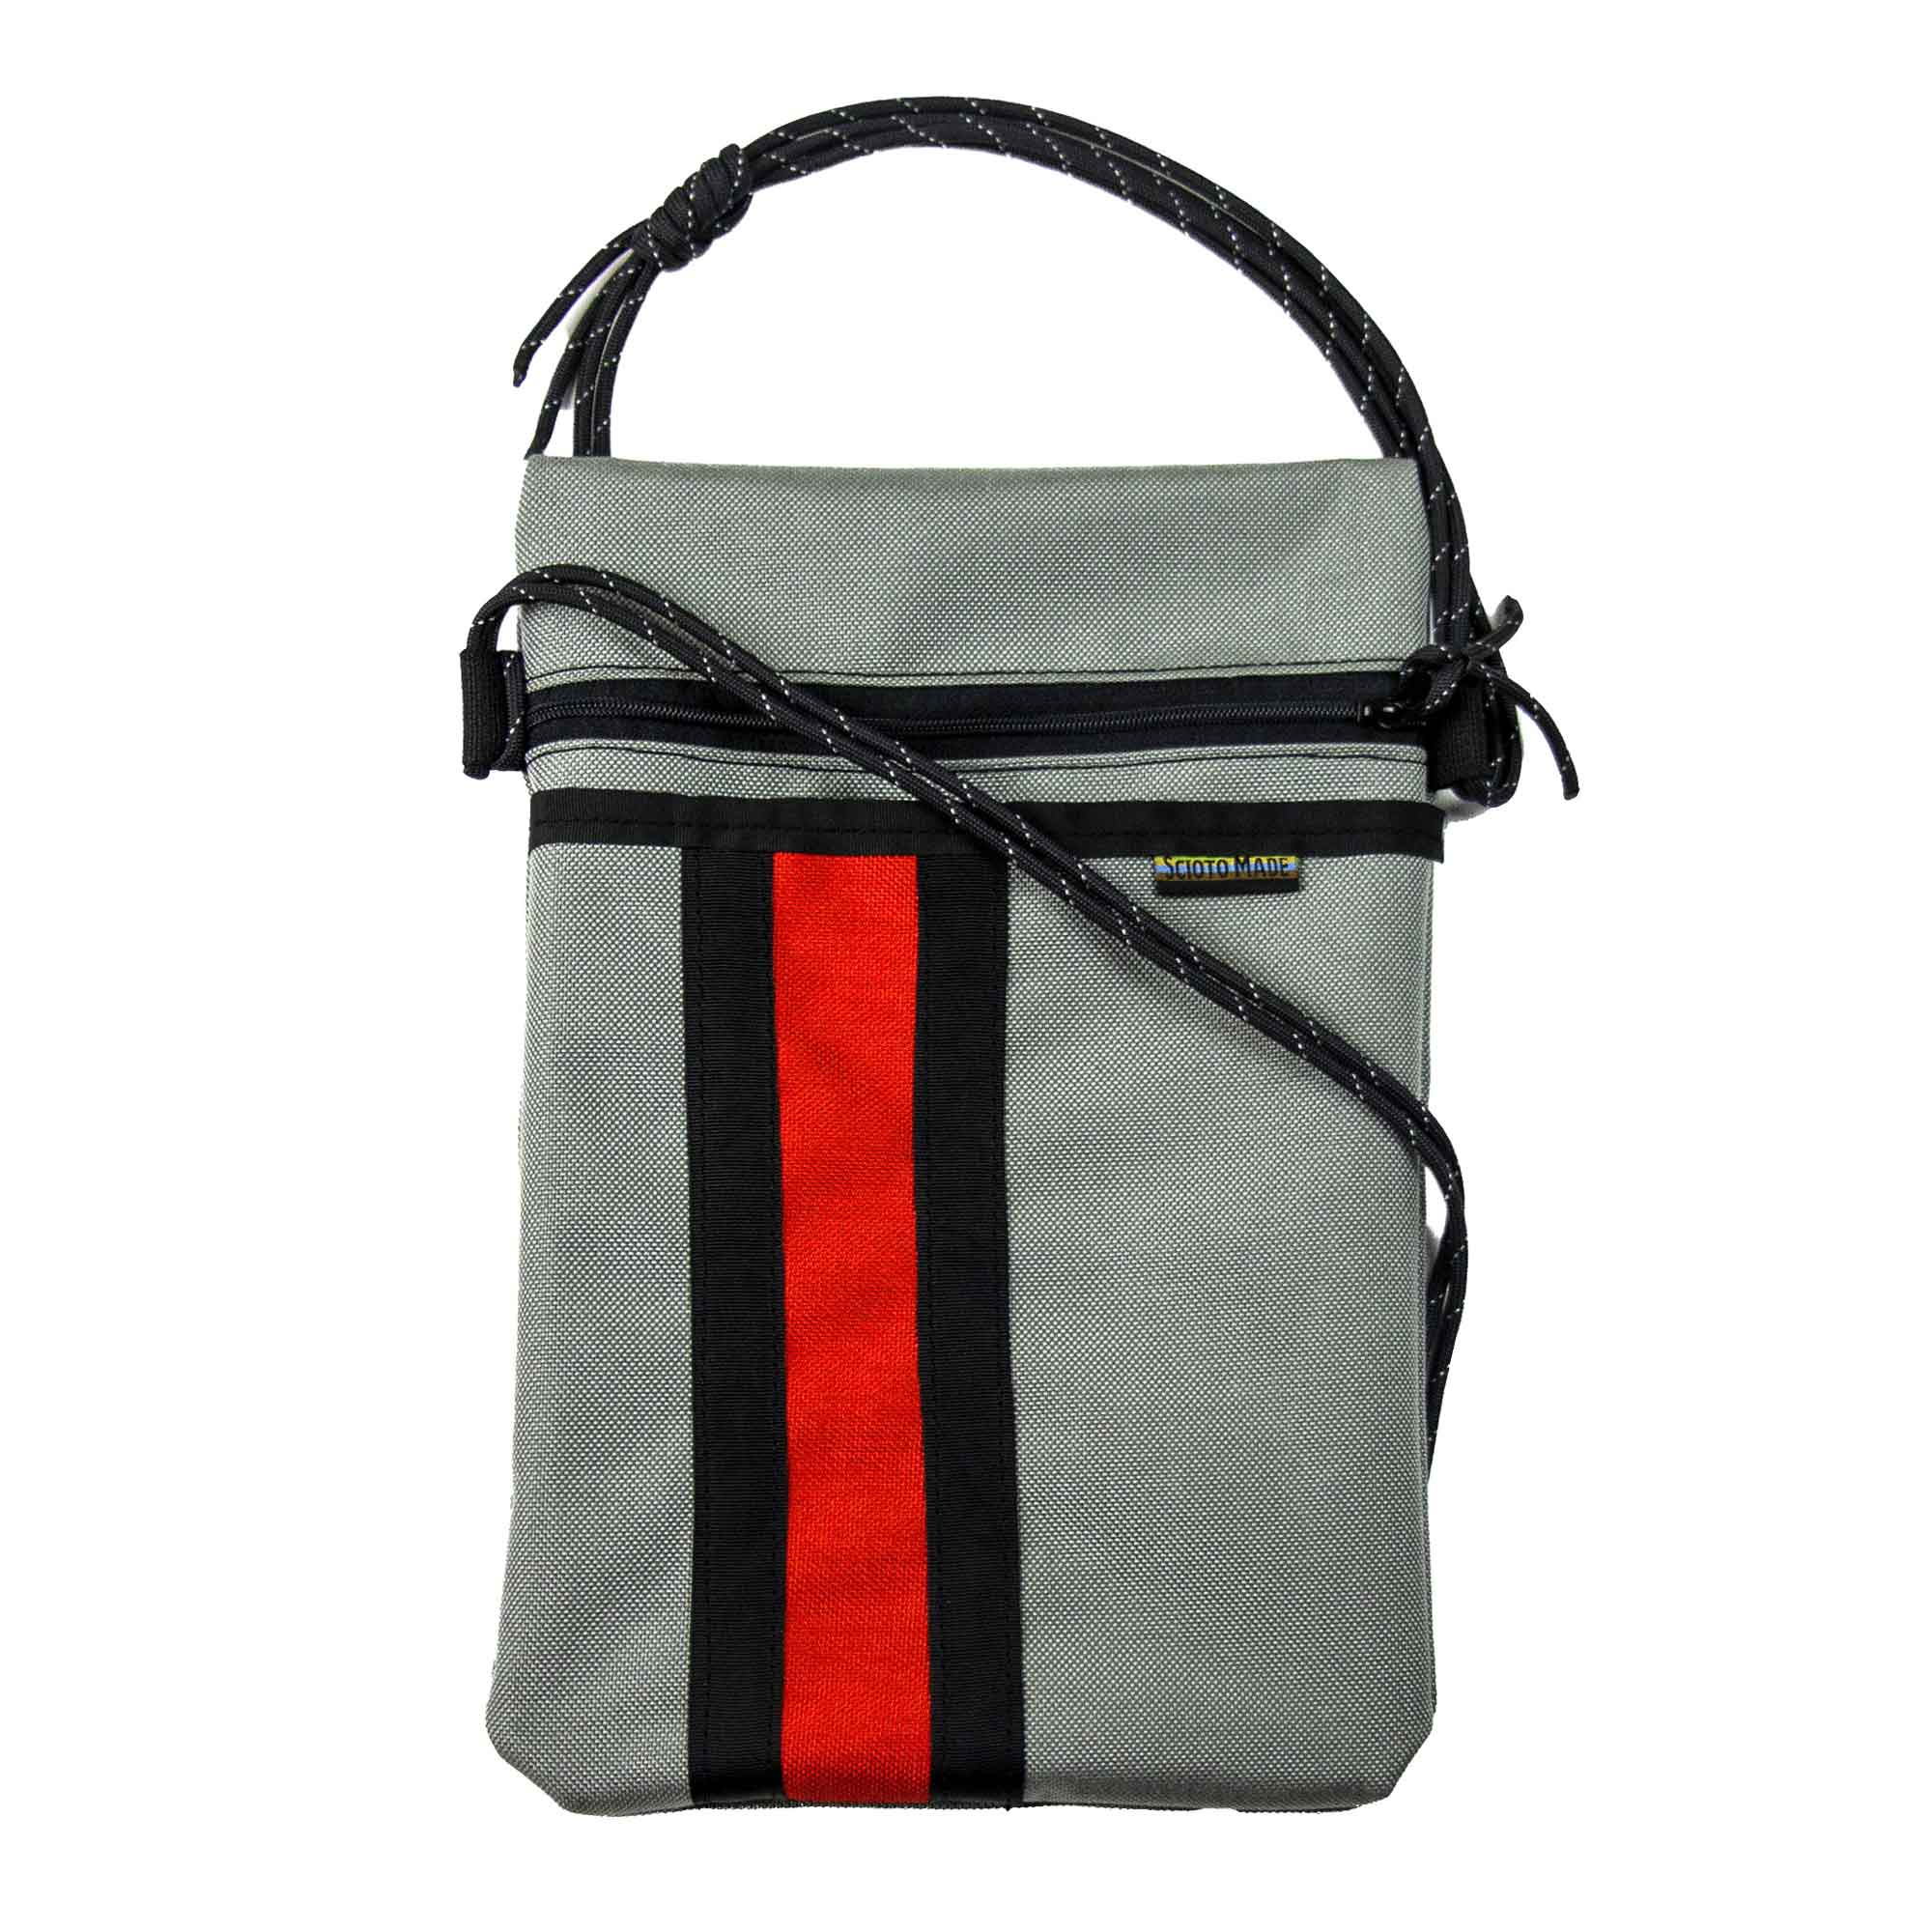 Scioto Made crossbody bag xover gray red black stripe front view 01